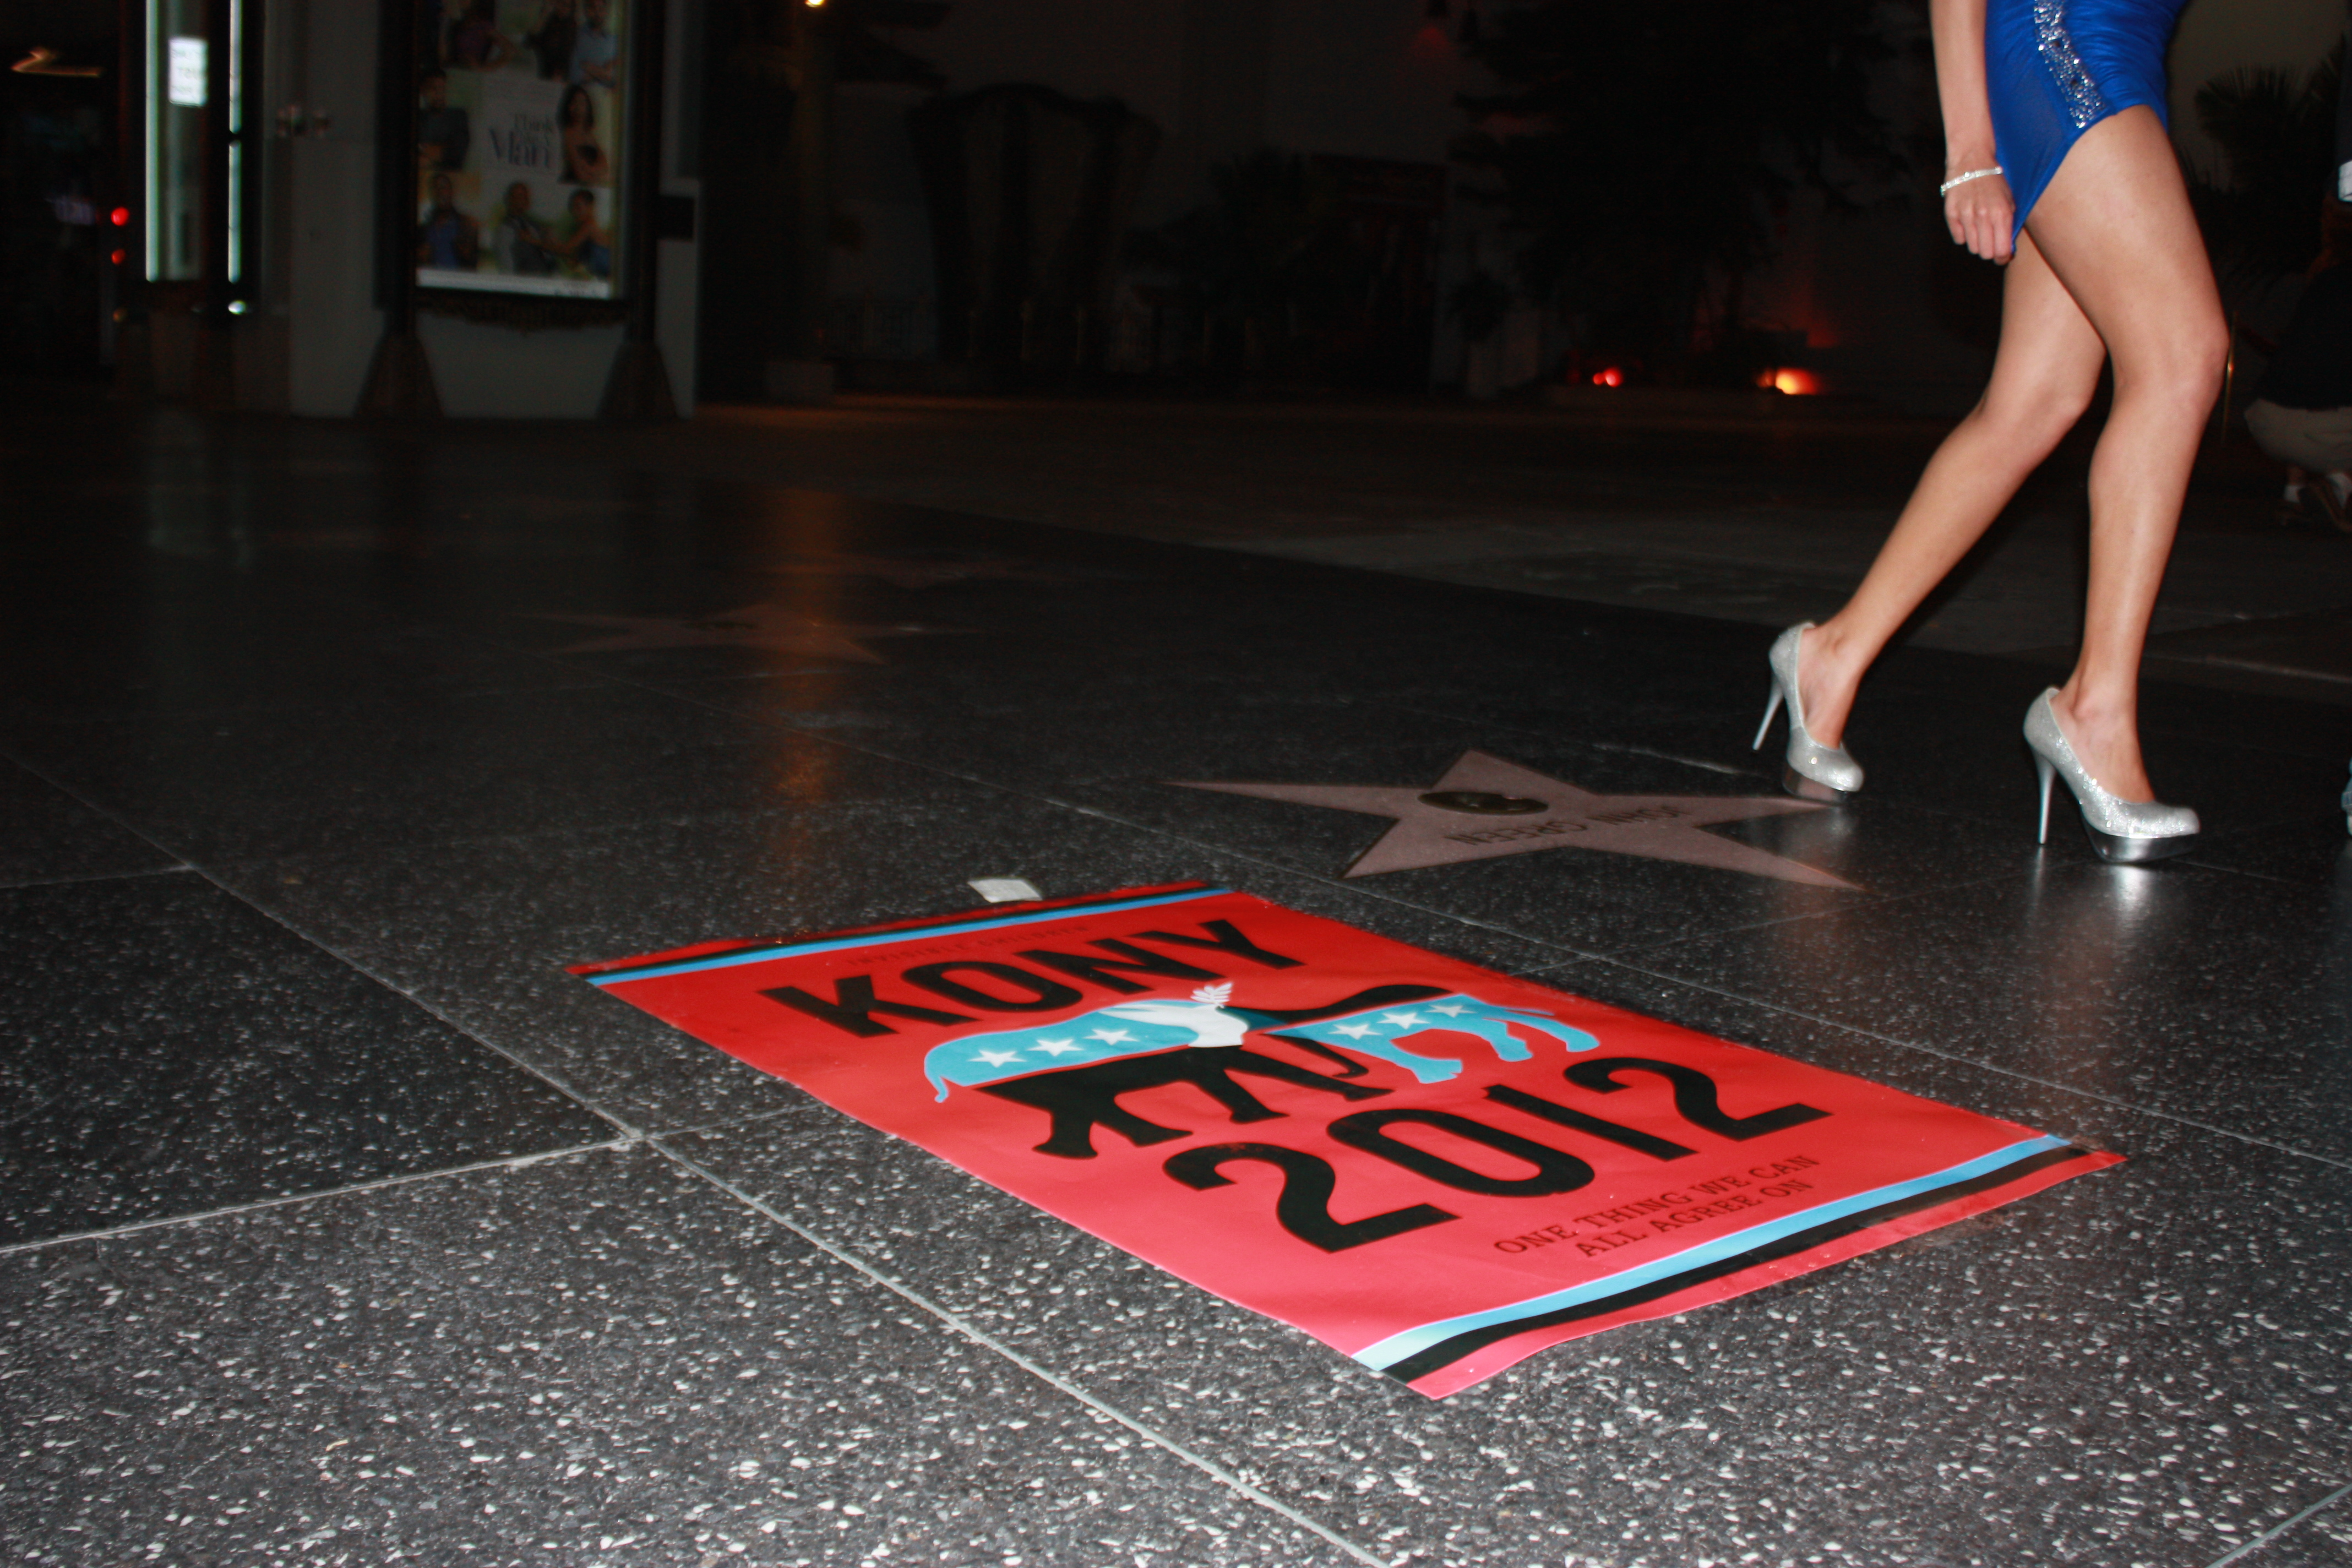 Students ventured to Los Angeles to document the placement of Joseph Kony posters. To the dismay of campaign supporters, there were not as many posters as expected. | Sarah Seman/THE CHIMES